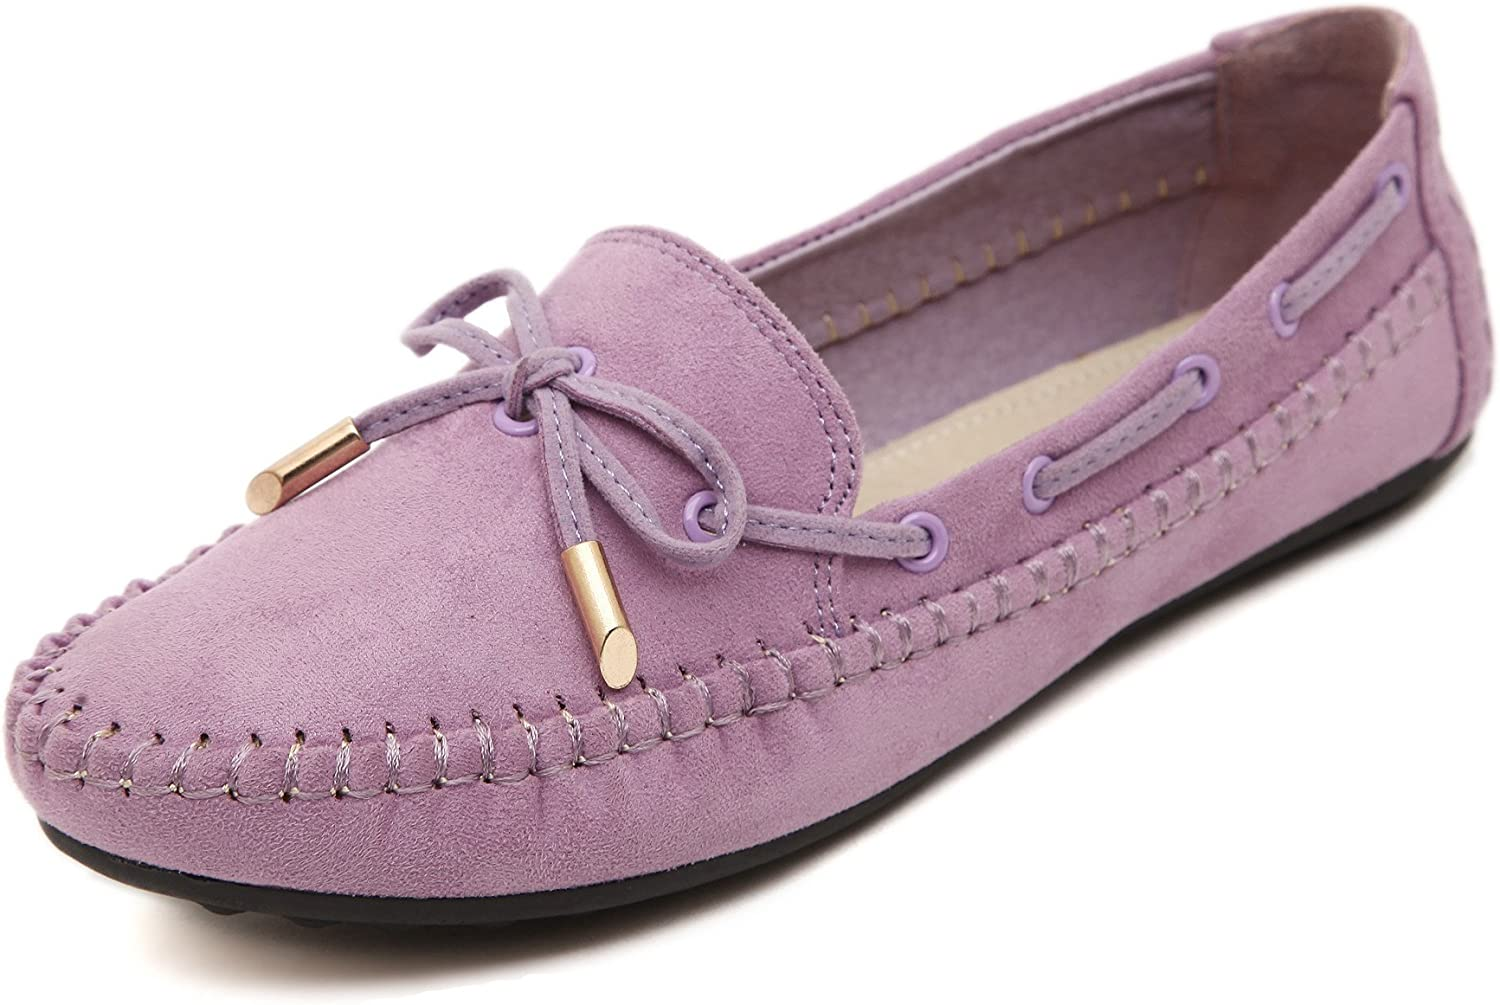 SOSUSHOE Womens Casual Slim&Narrow Loafers Slip On Flats, Driving&Walking Casual Moccasins shoes